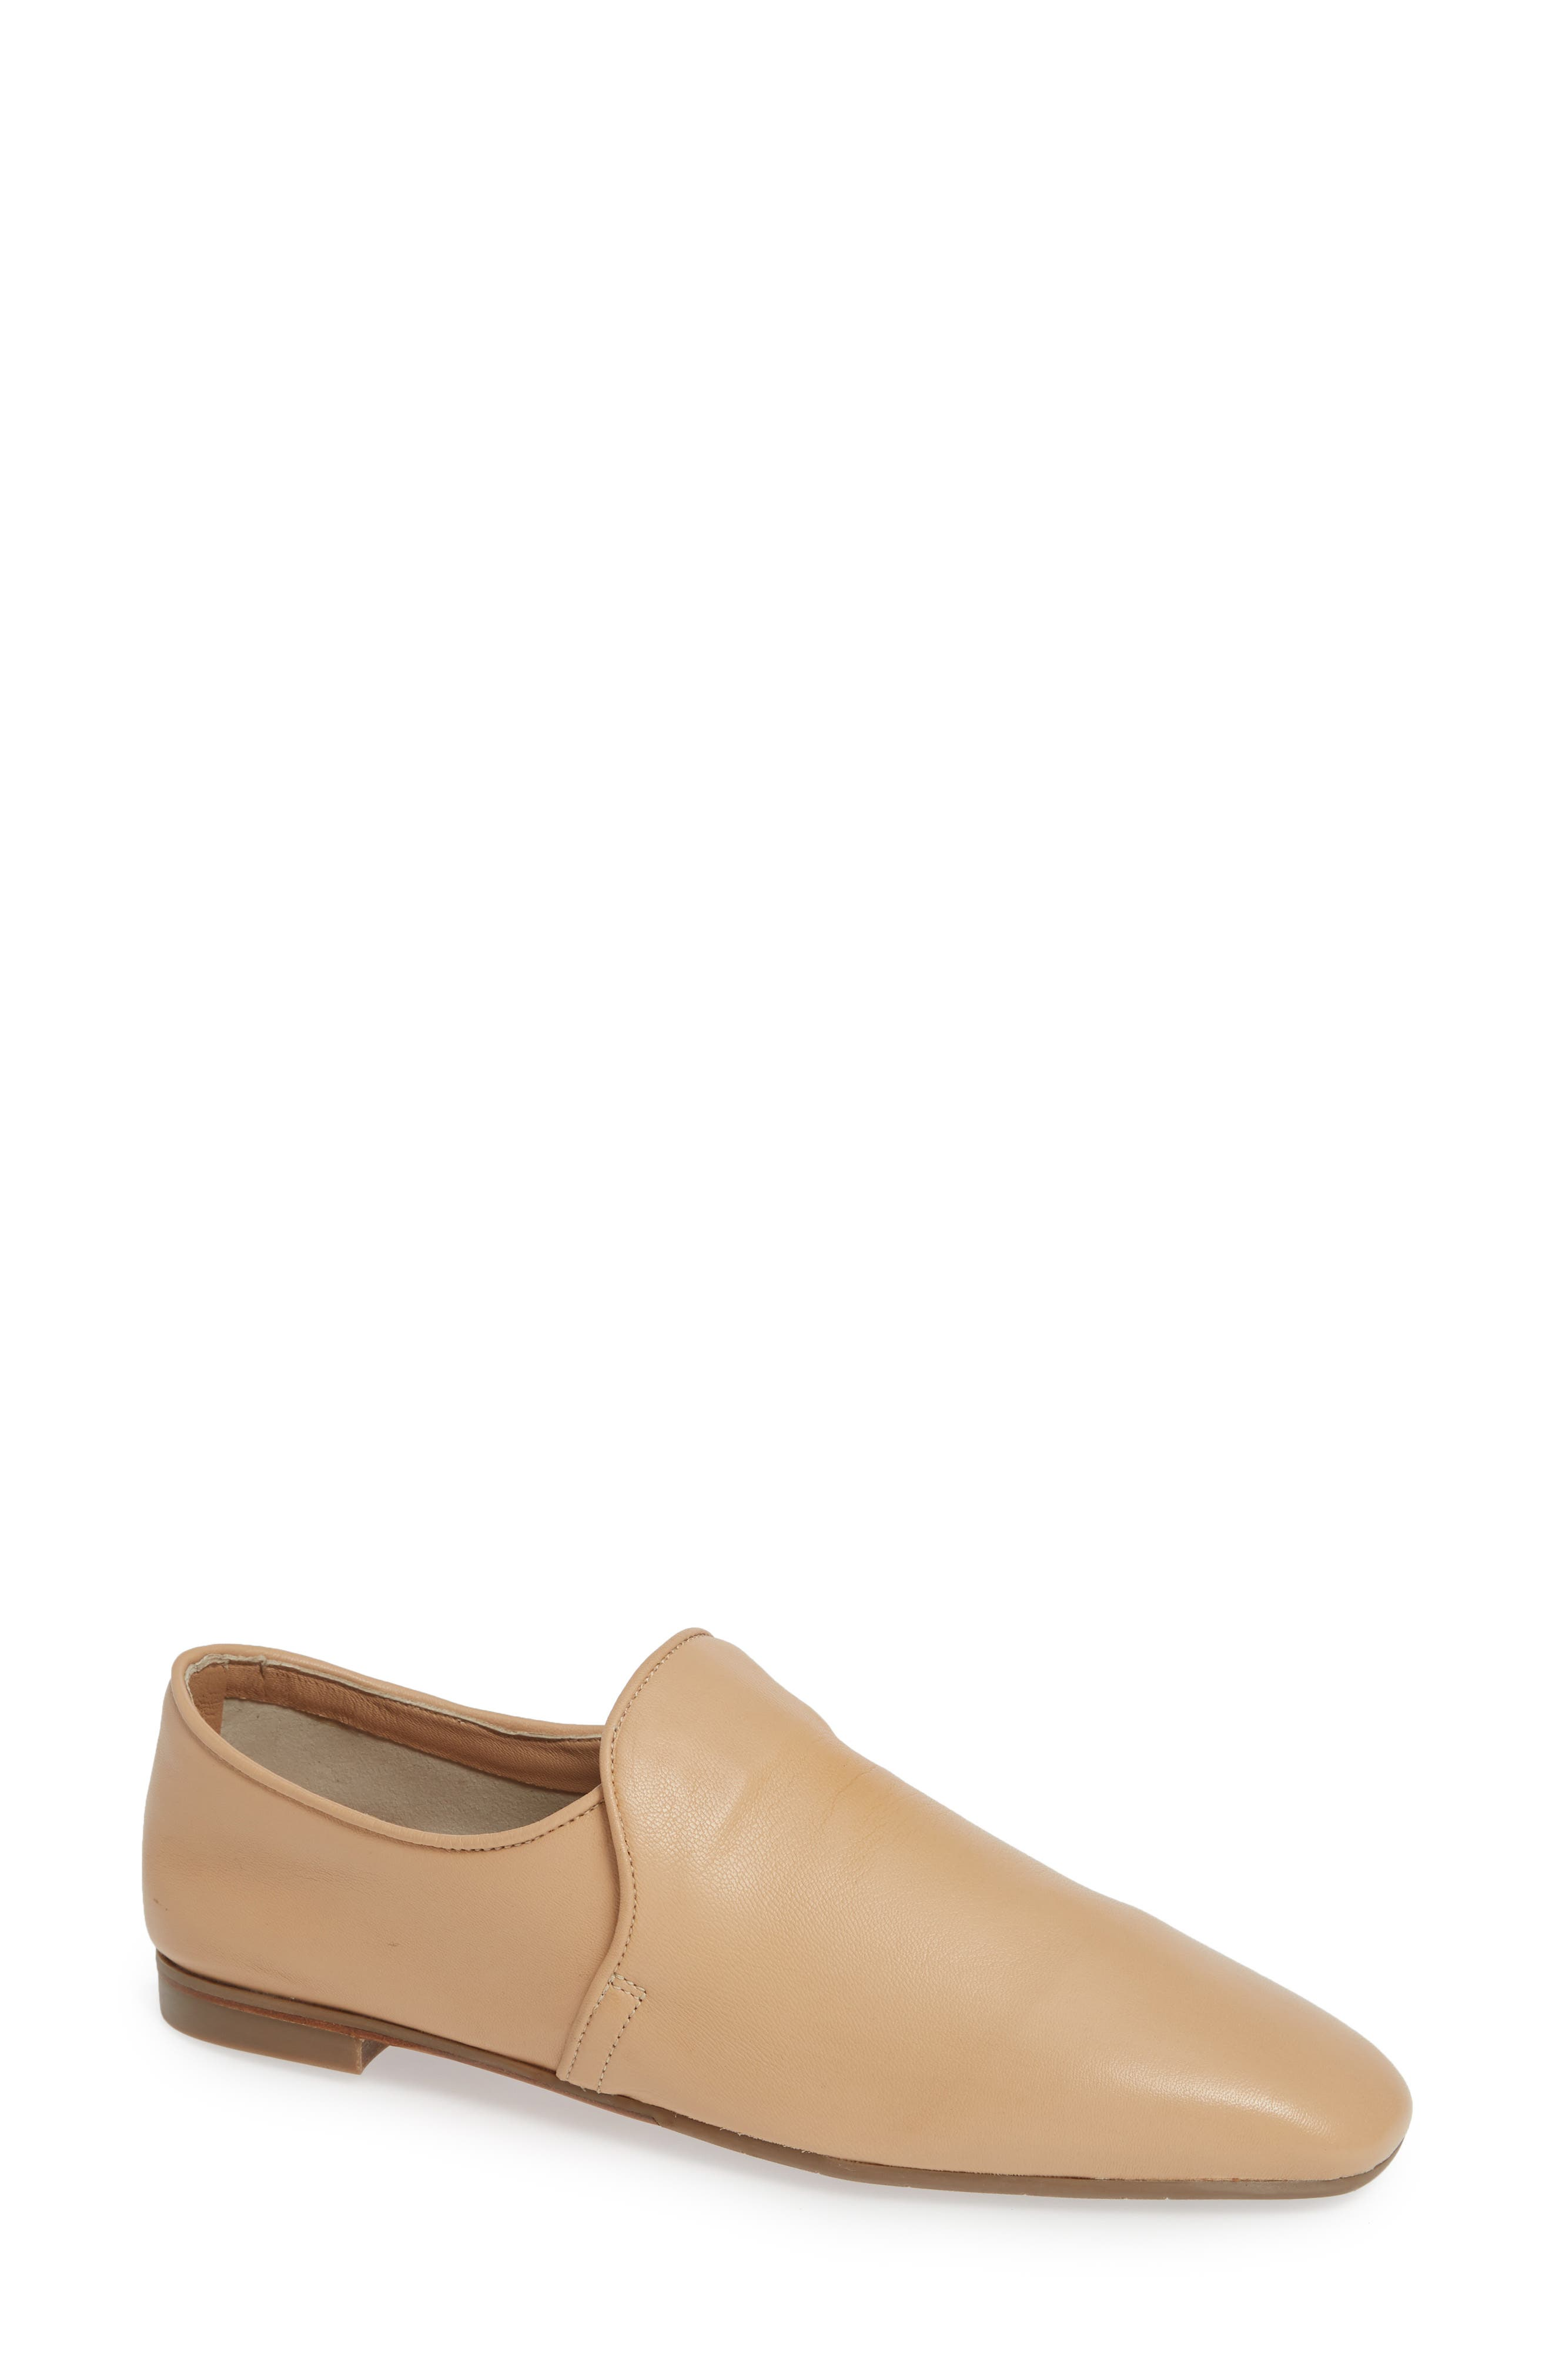 Revy Weatherporoof Loafer, Main, color, NUDE NAPPA